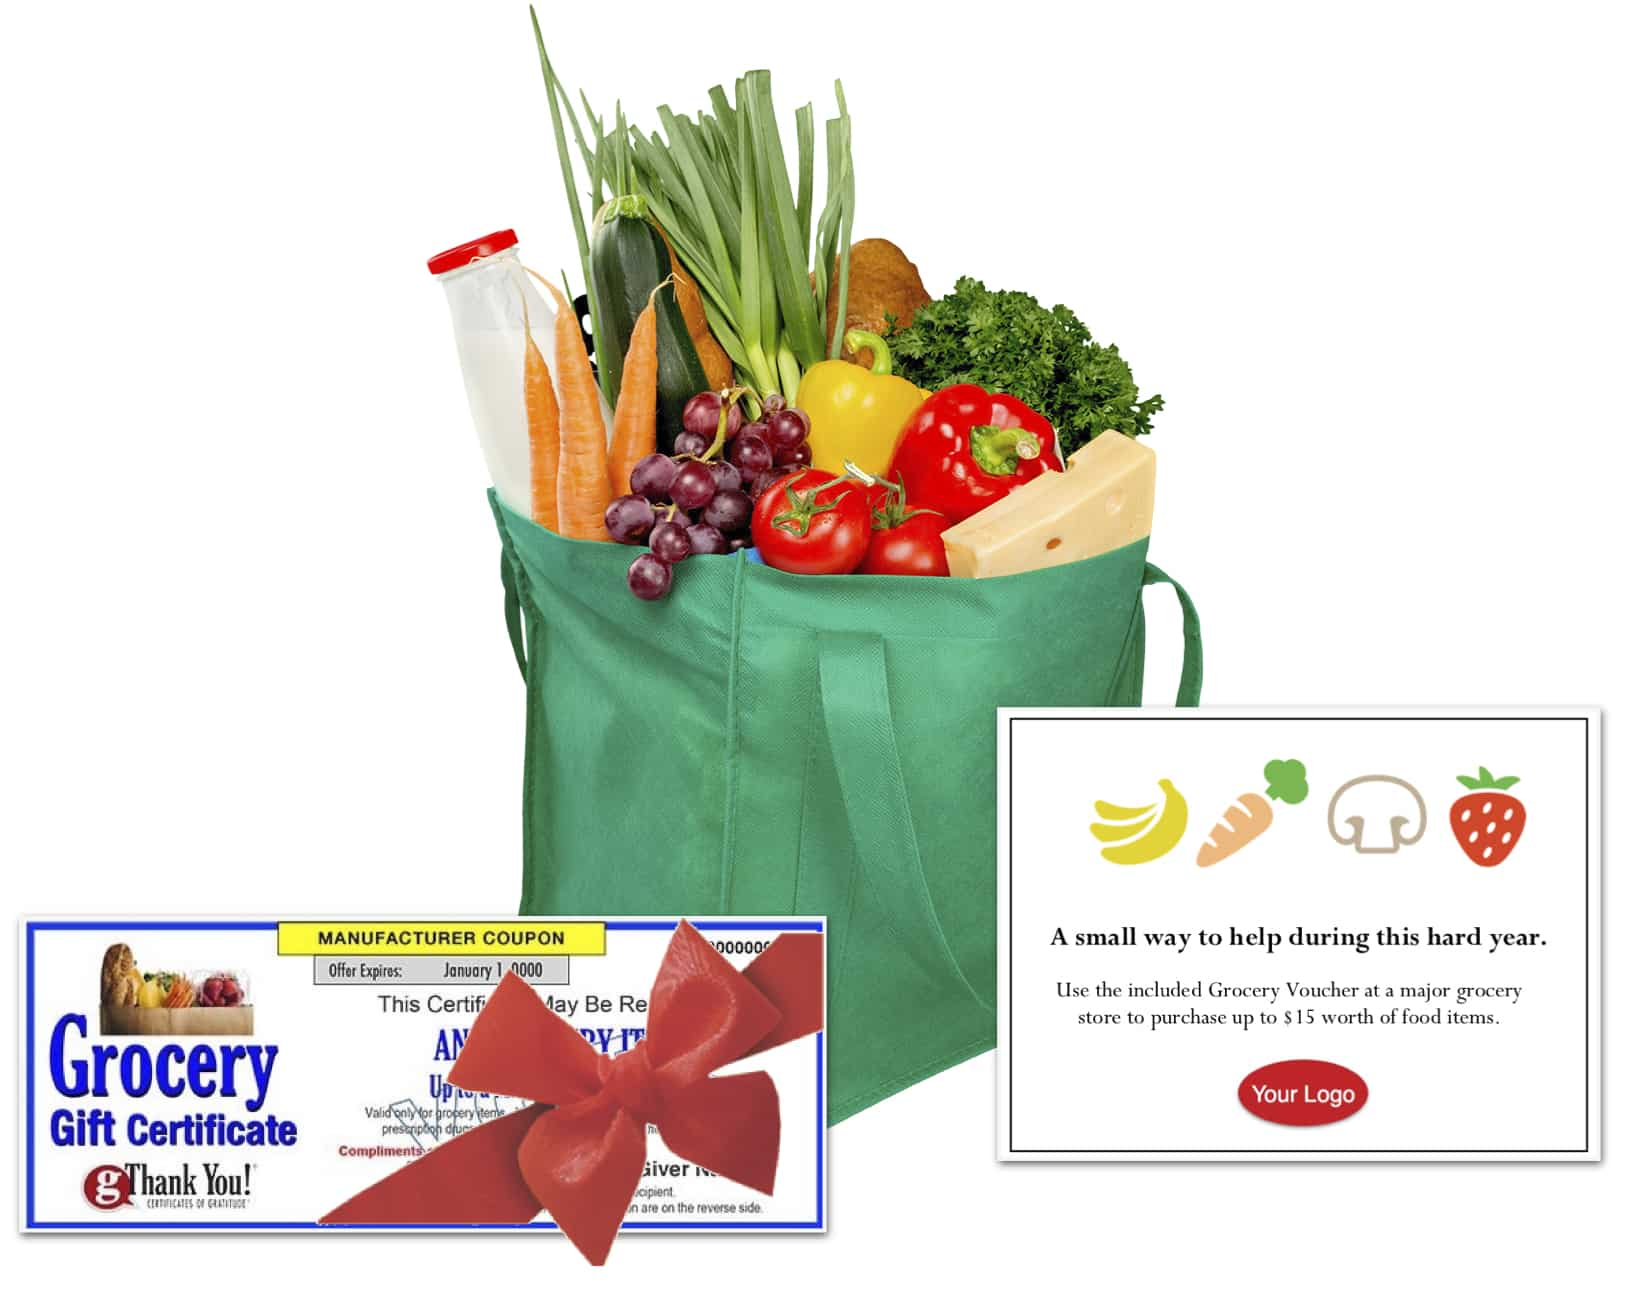 Give the Gift of Groceries with gThankYou Grocery Gift Certificates